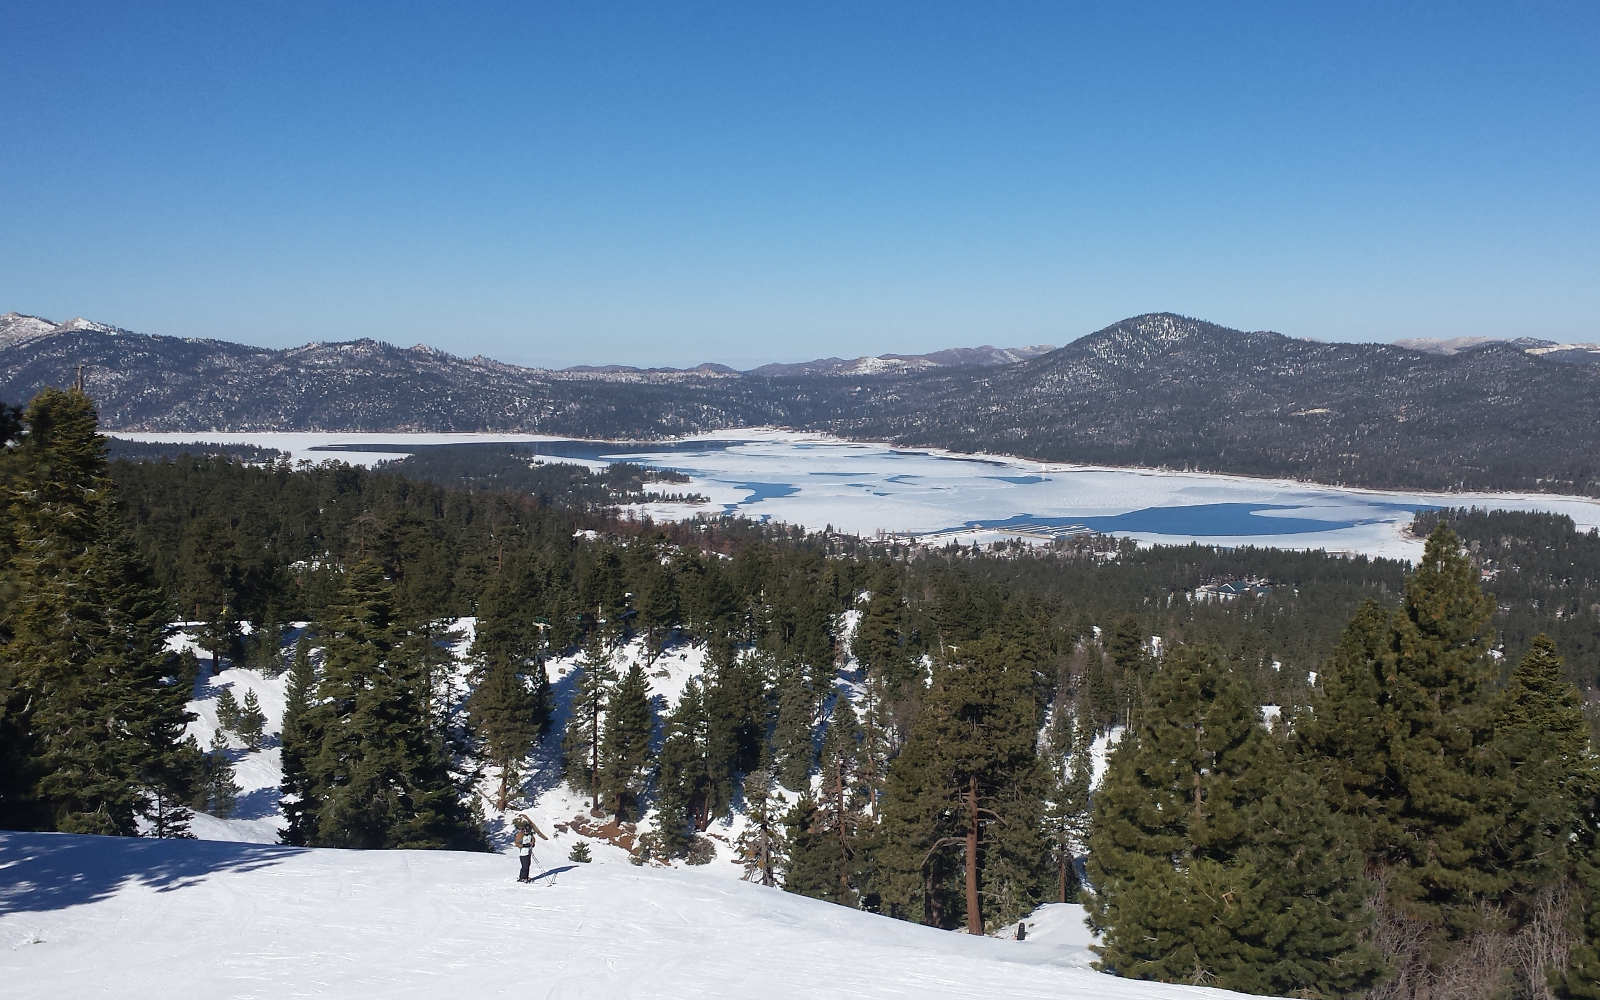 Lake and mountains in LA big bear snowboarding